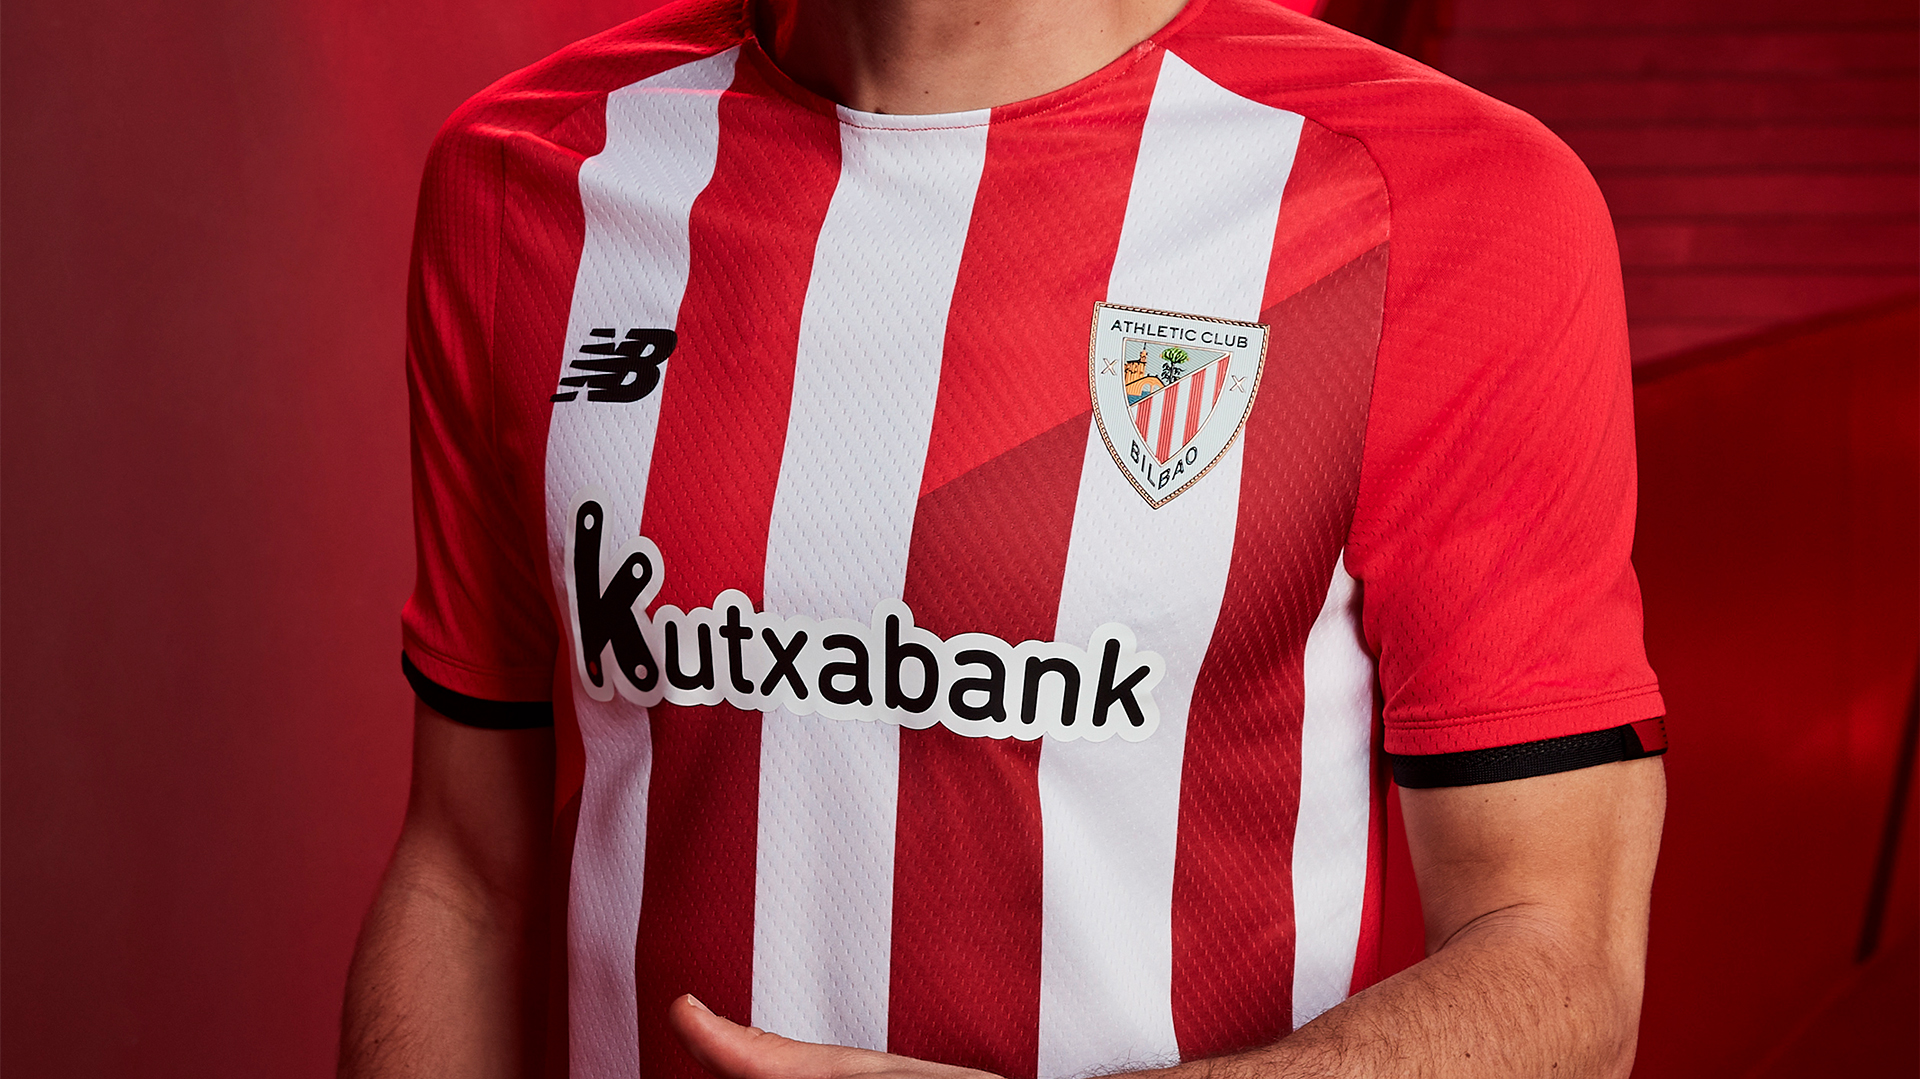 Introducing Athletic Club's 2021/22 home kit